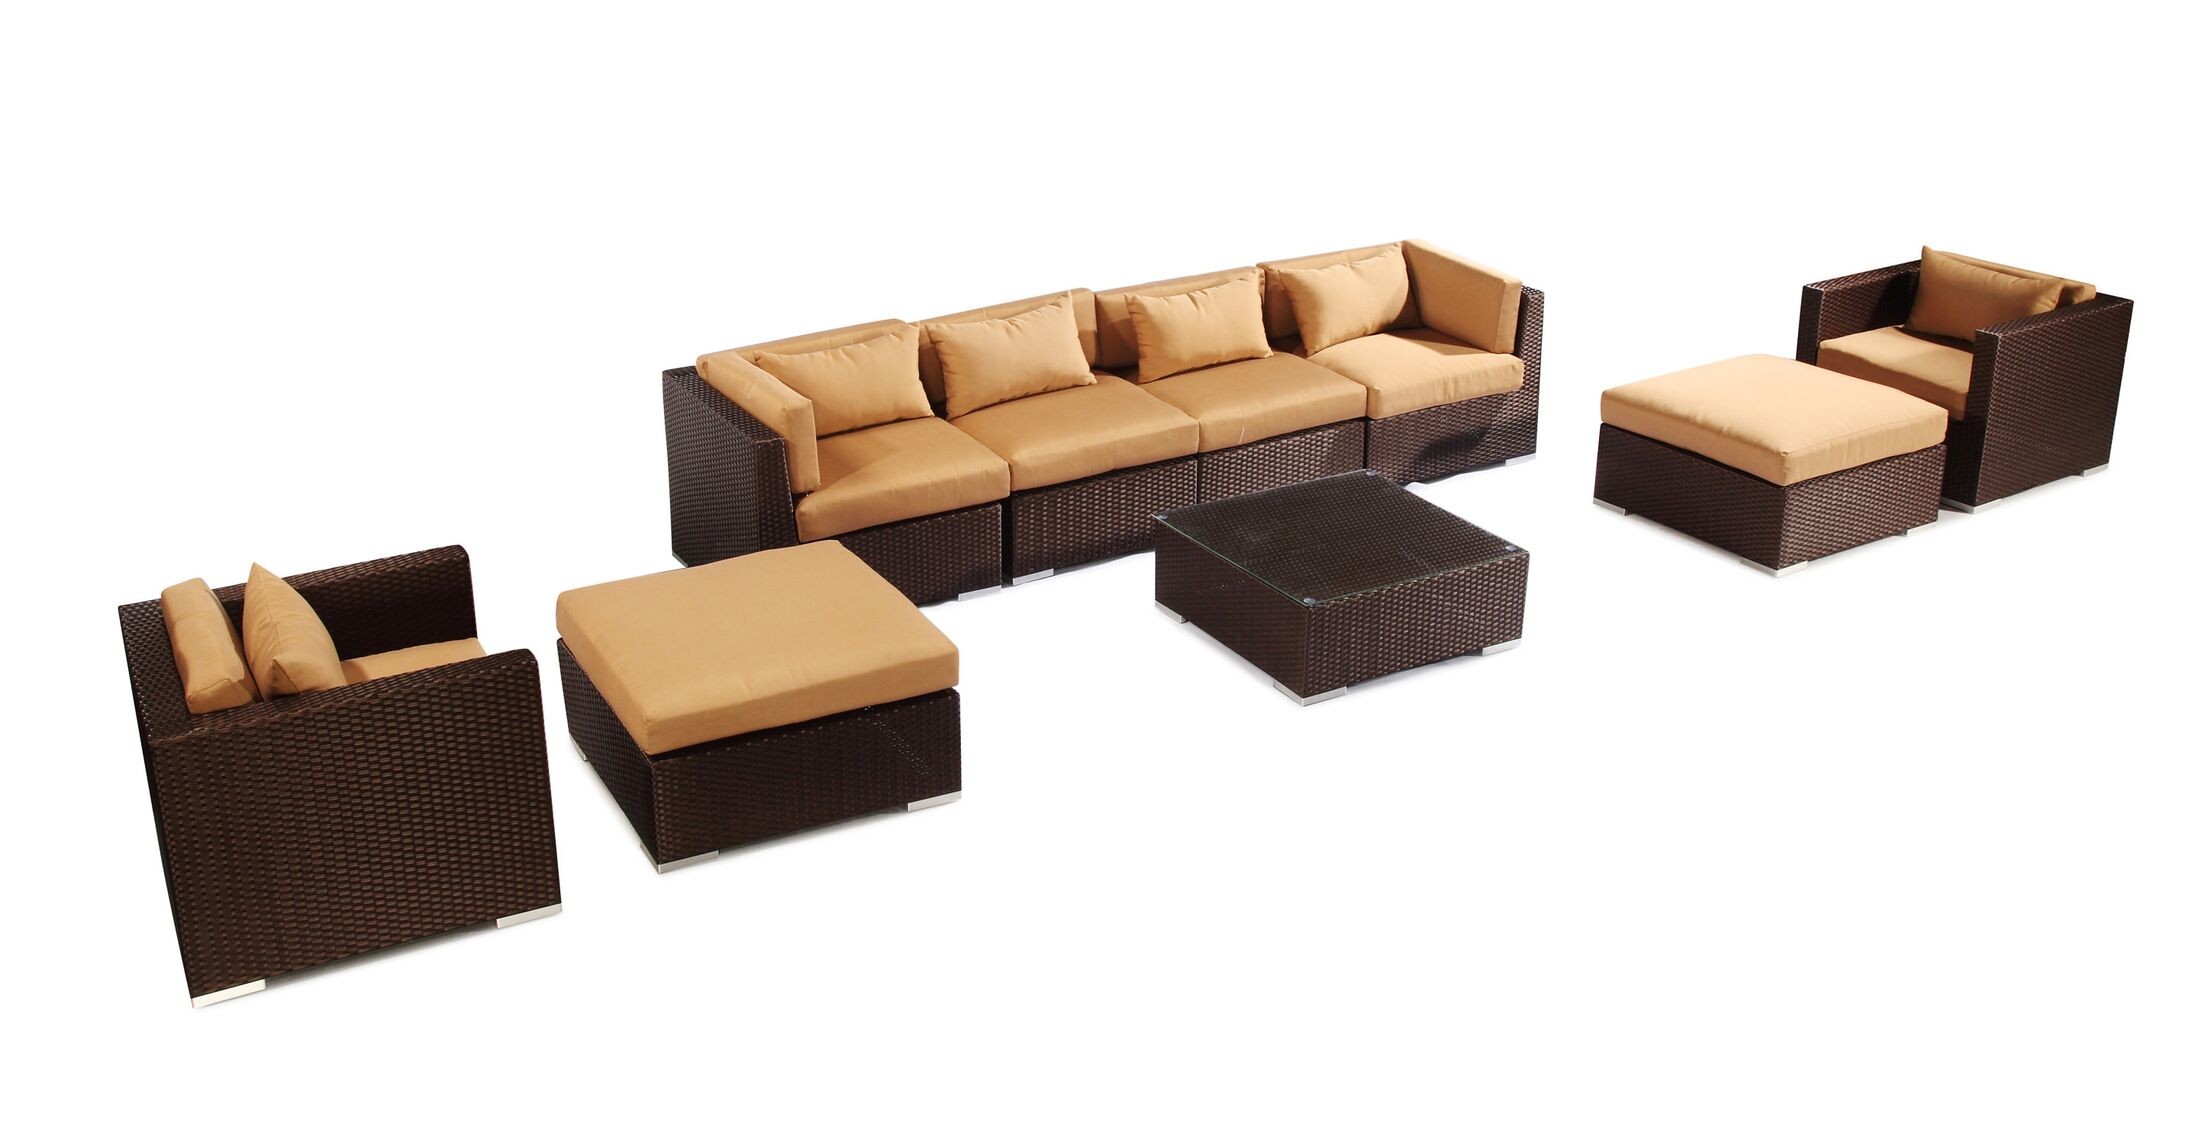 Kauai 9 Piece Sectional Set with Cushions Fabric: Taupe, Color: Brown